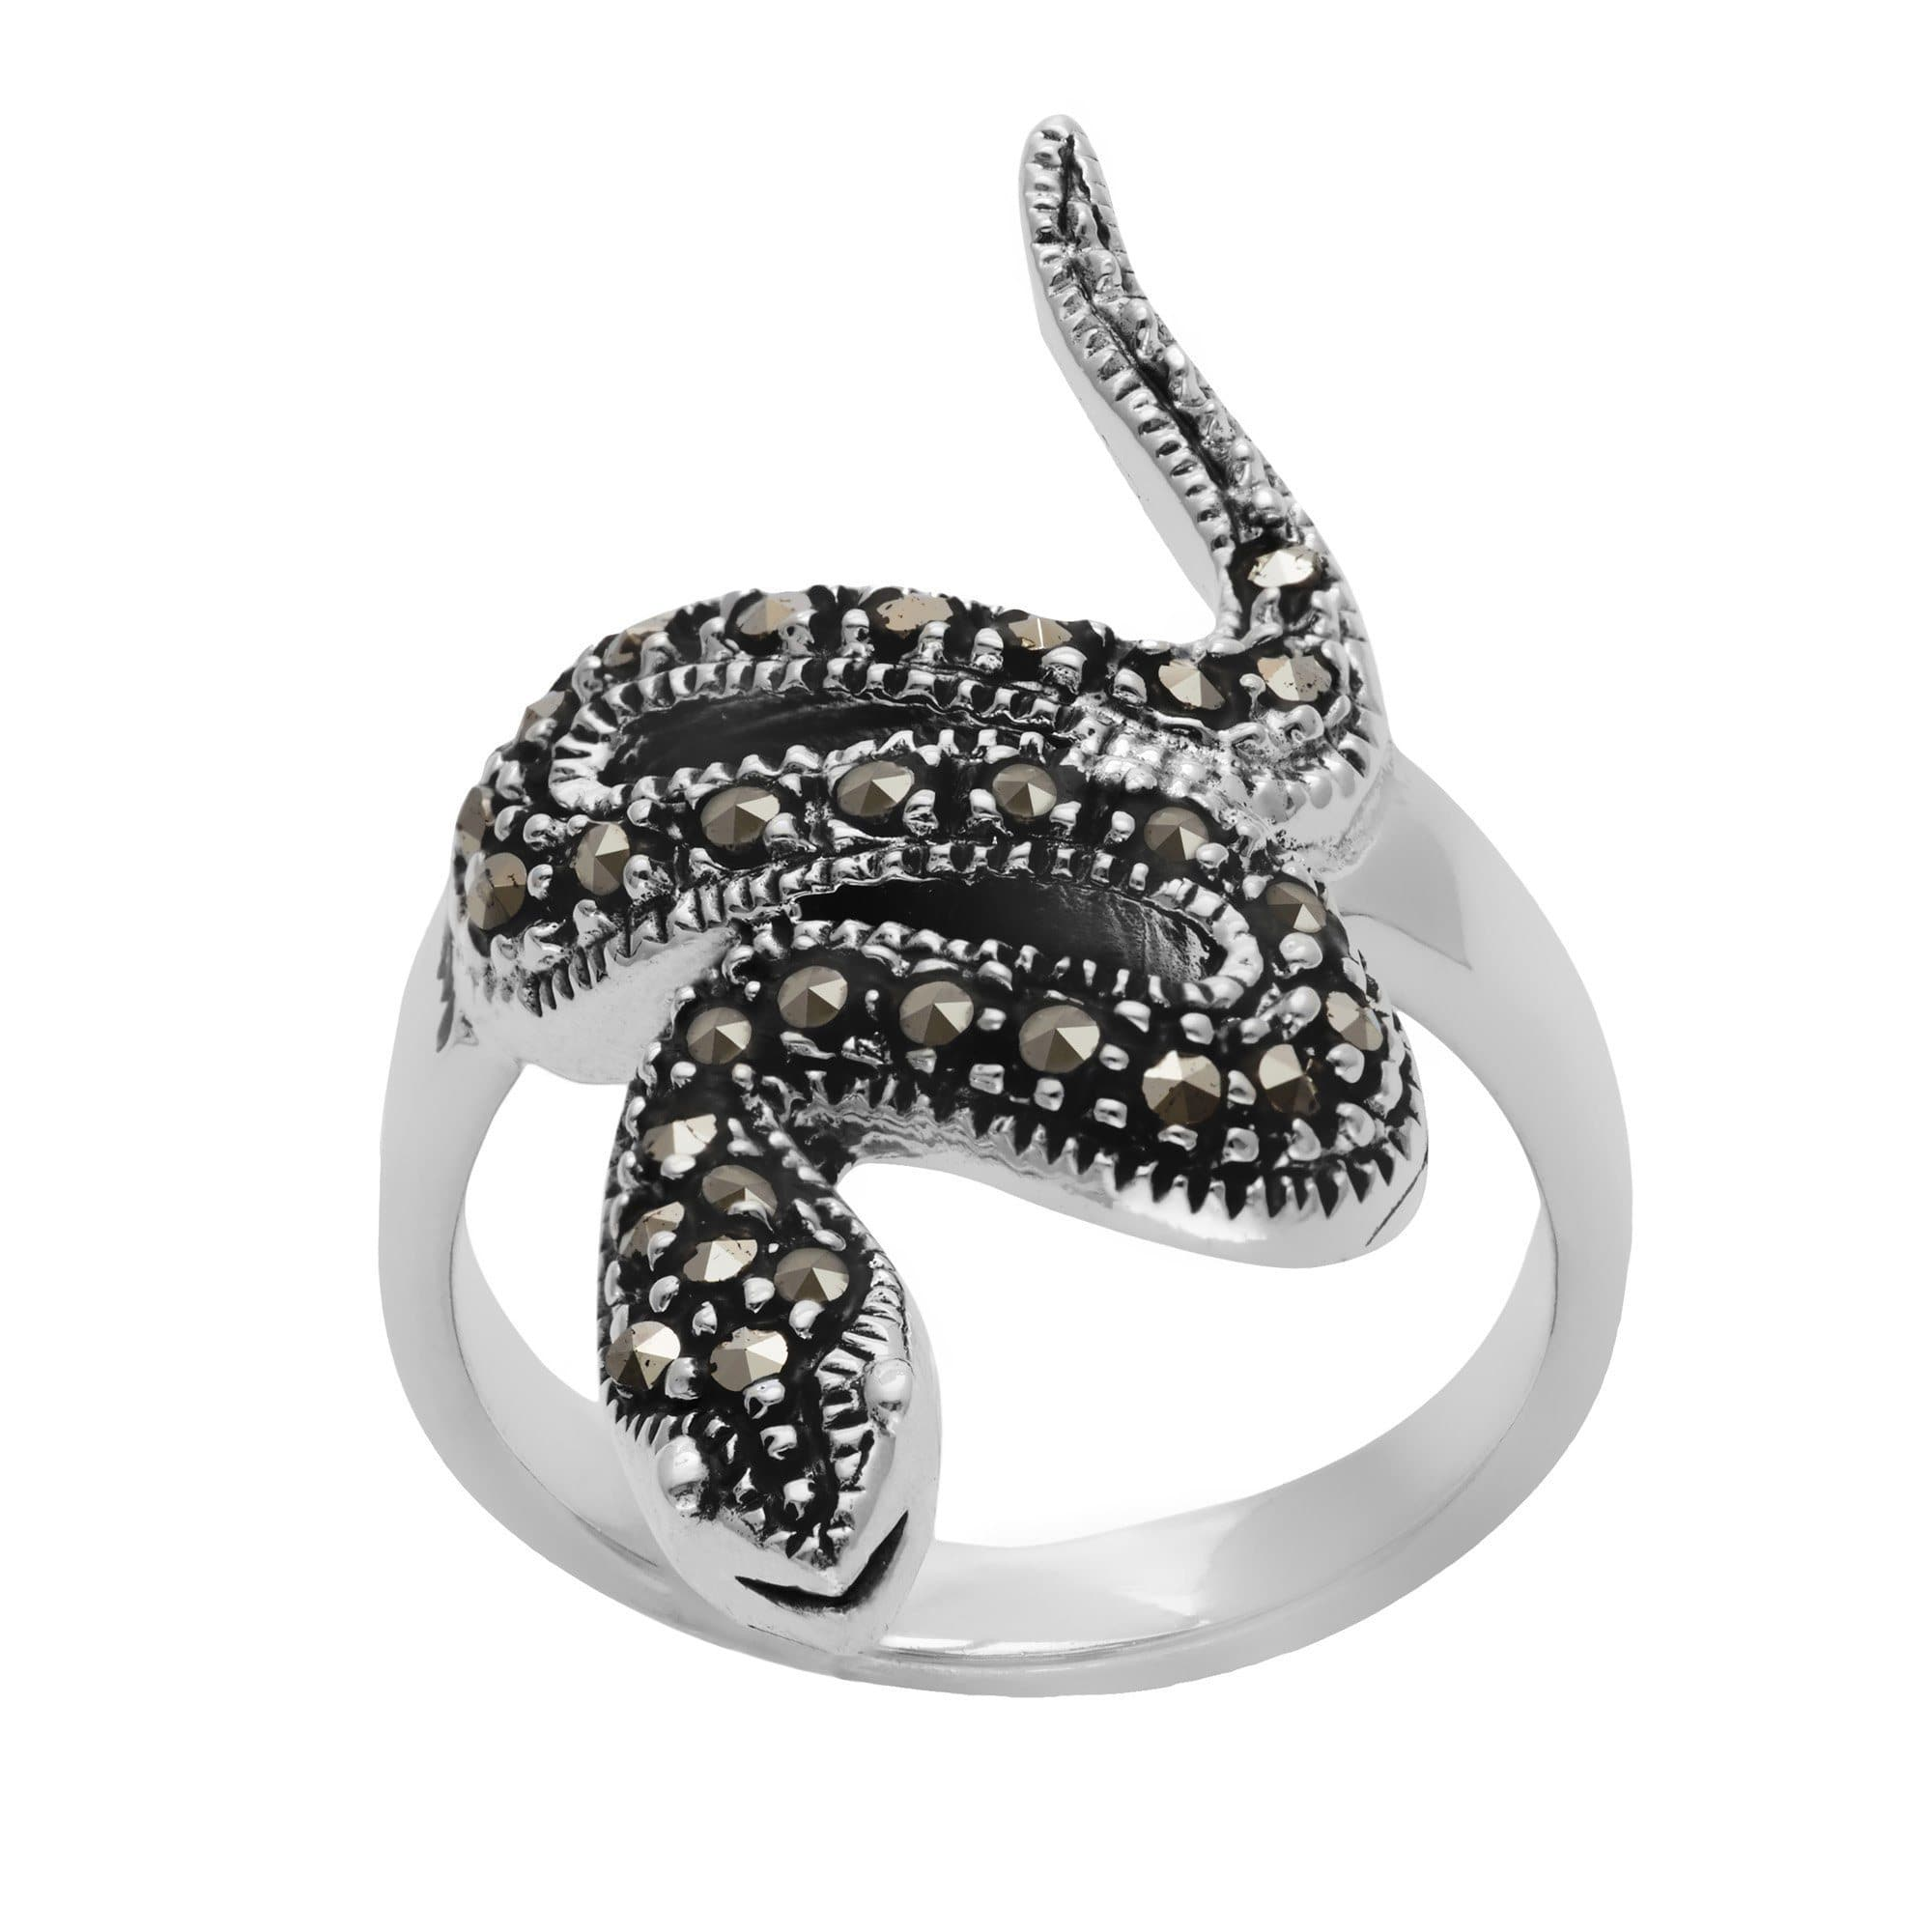 of a piece aeravida sterling grace front with gemstone mr swirl this products fill fashionable for captivating gemstones the star marcasite design style ring cute details silver rings in dazzles